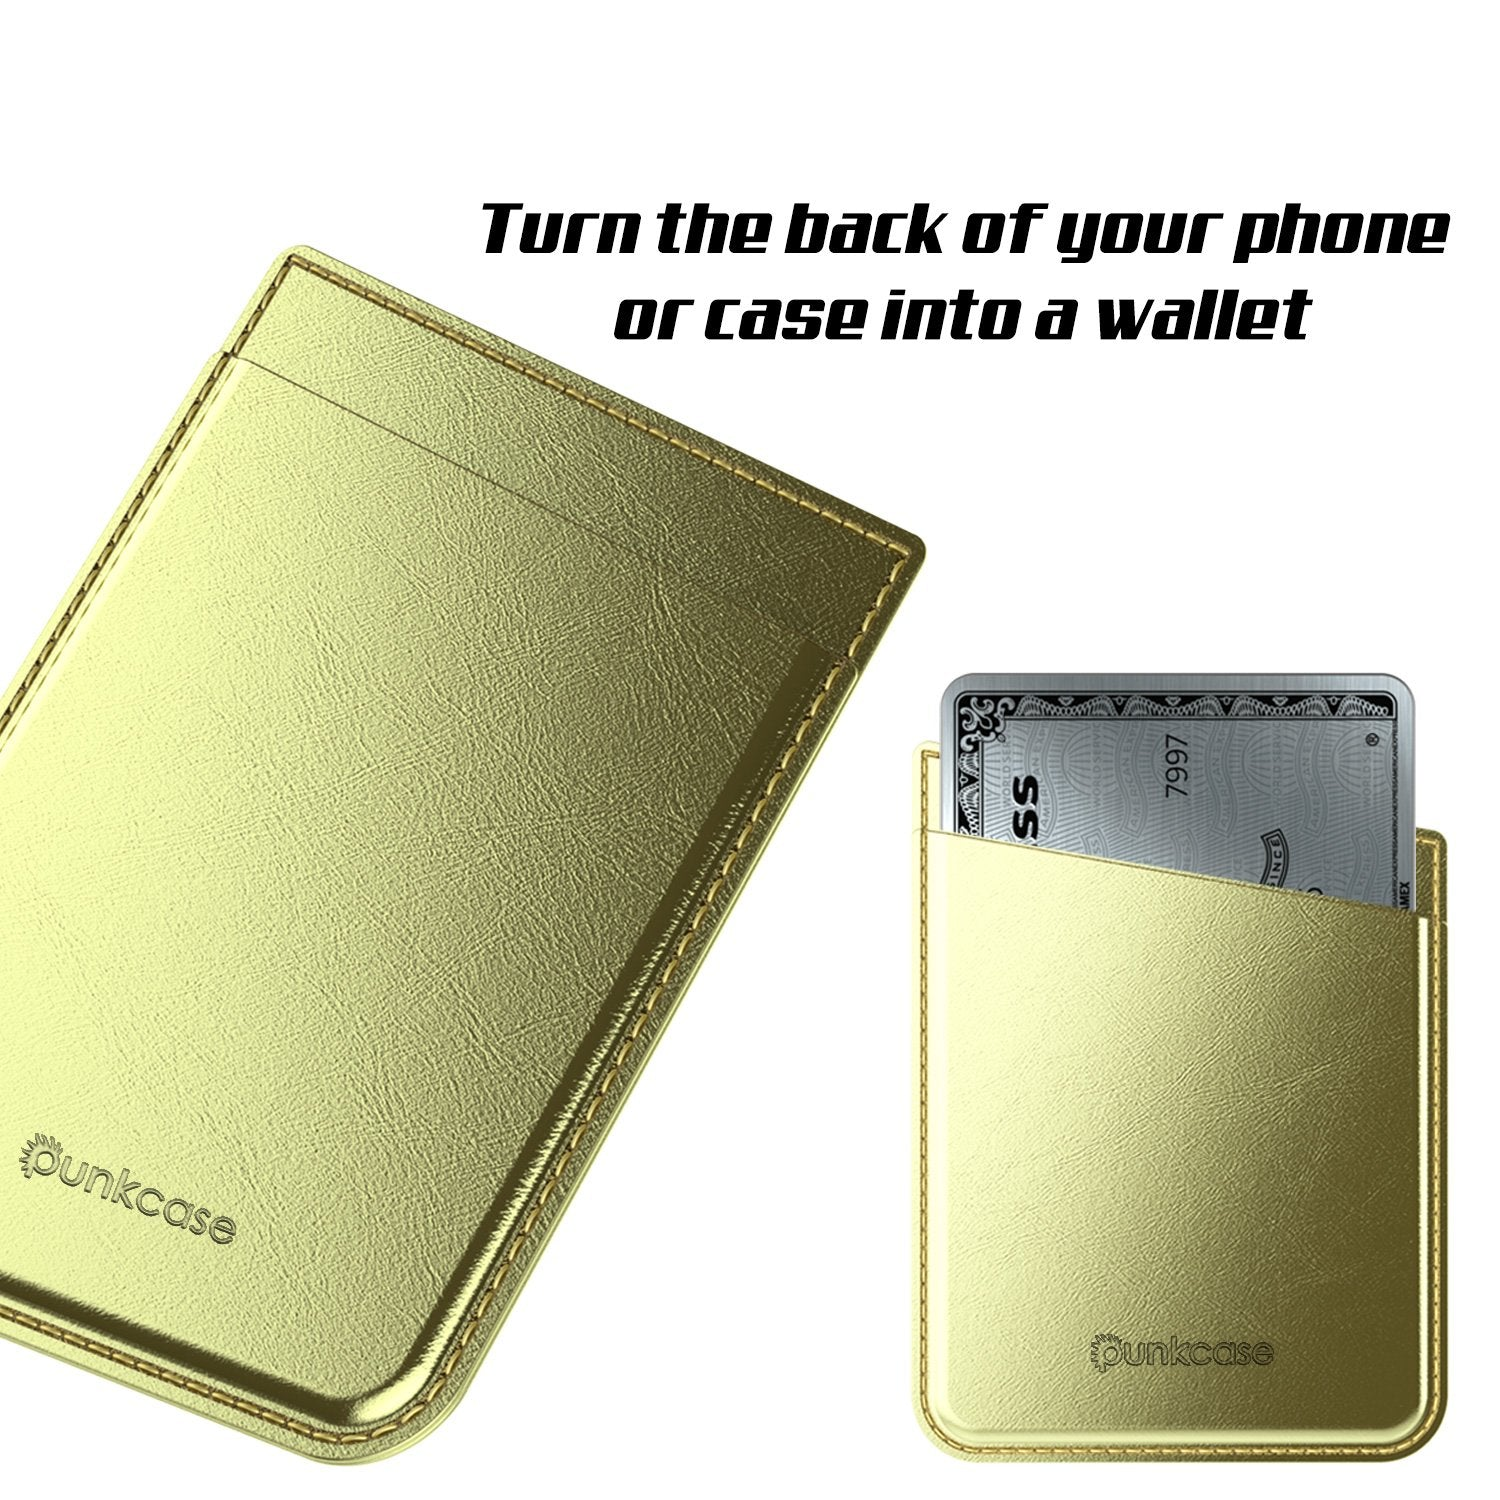 PunkCase CardStud Deluxe Stick On Wallet | Adhesive Card Holder Attachment for Back of iPhone, Android & More | Leather Pouch | [Gold] - PunkCase NZ